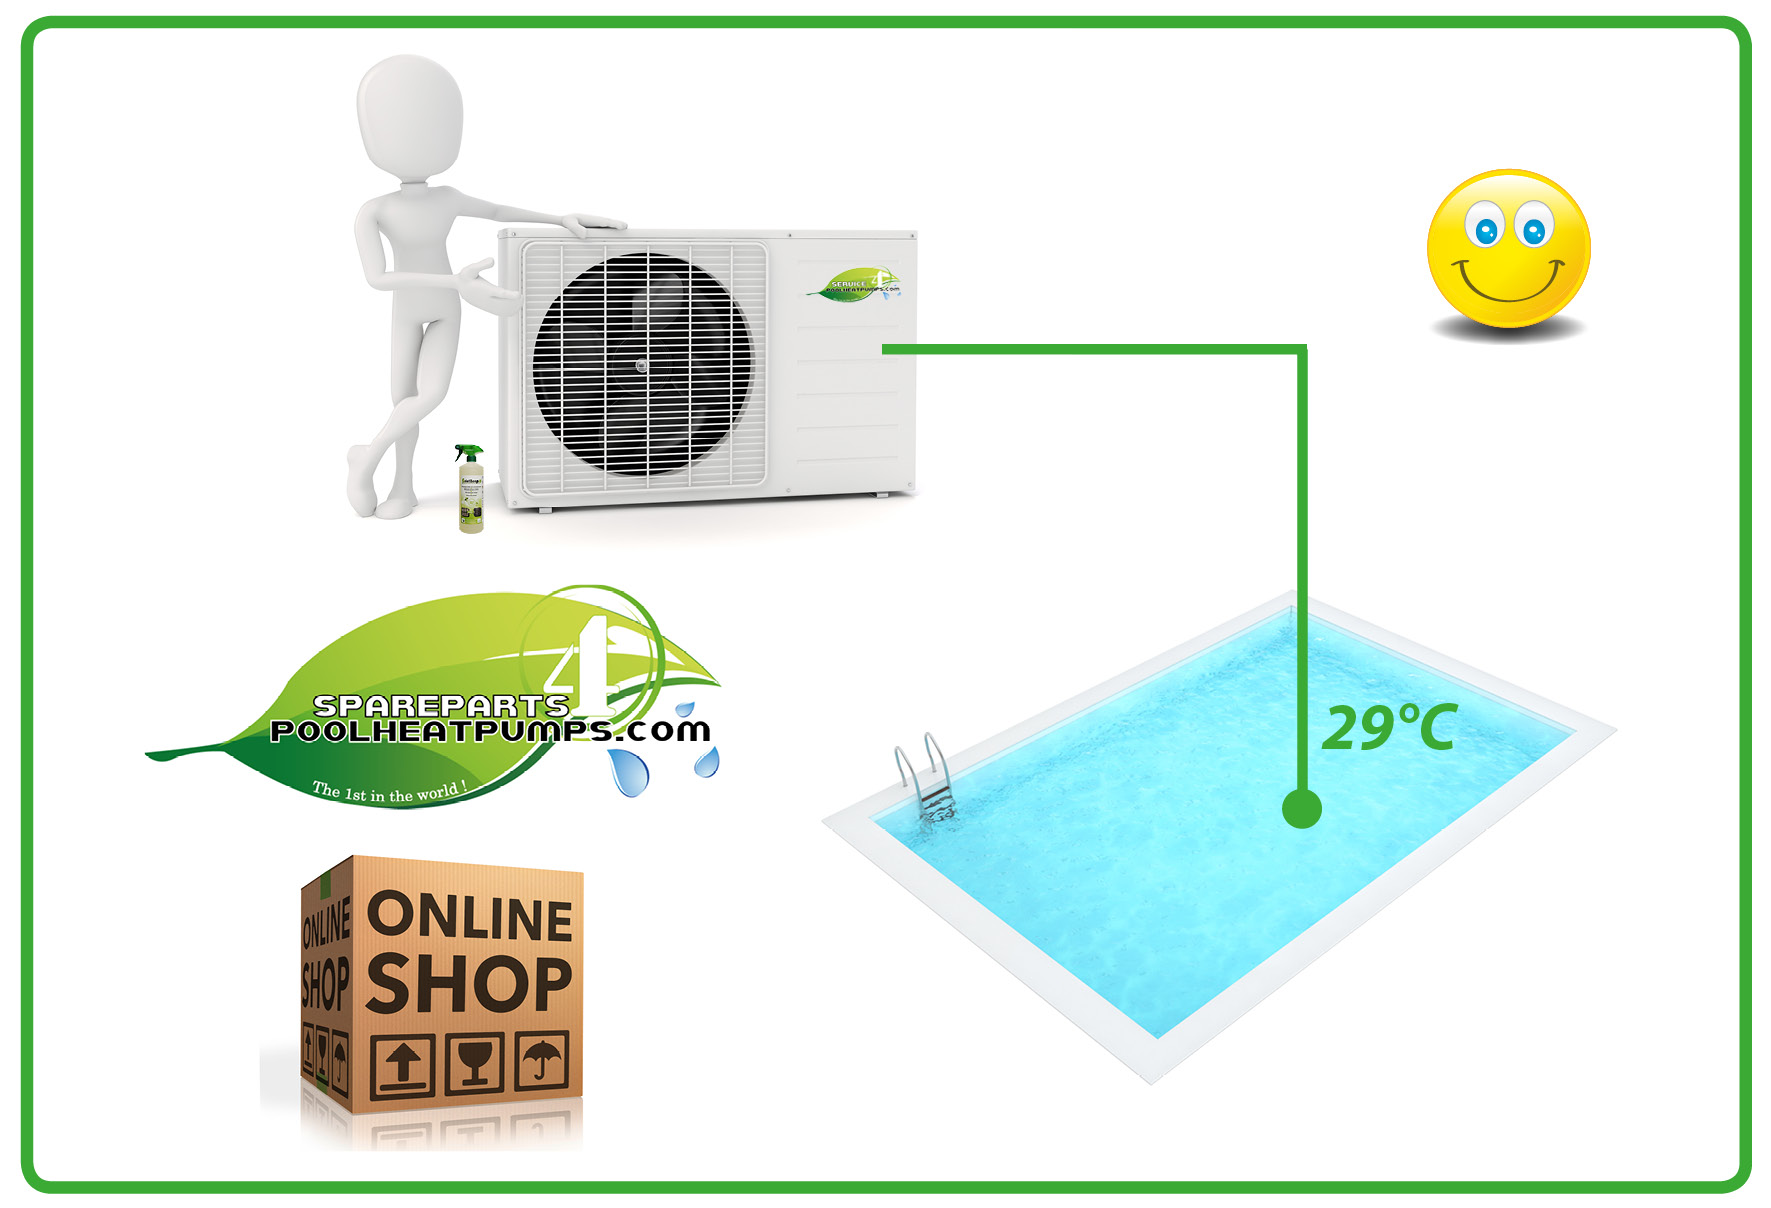 Spareparts4poolheatpumps